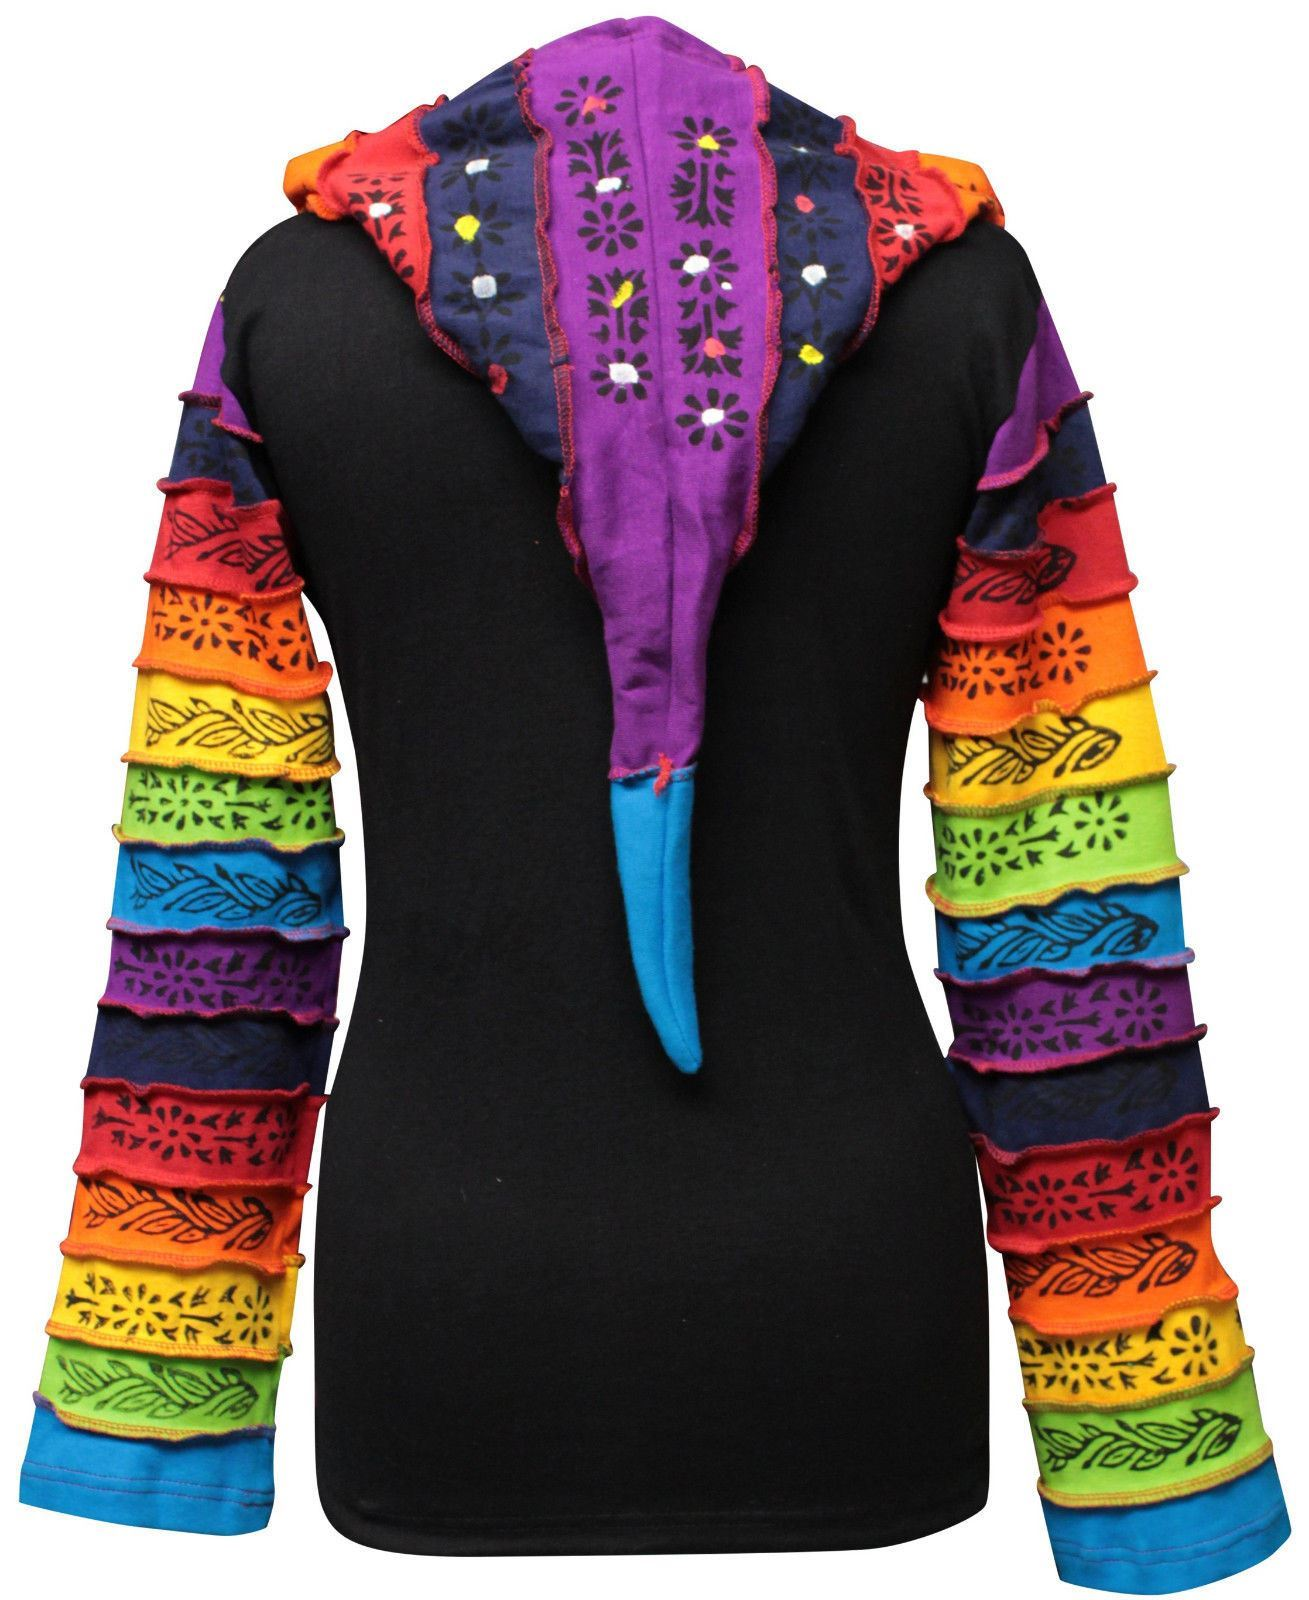 Women-Rainbow-Sleeved-Flower-Patch-Hoodie-Hippy-Light-Weight-Jacket thumbnail 3